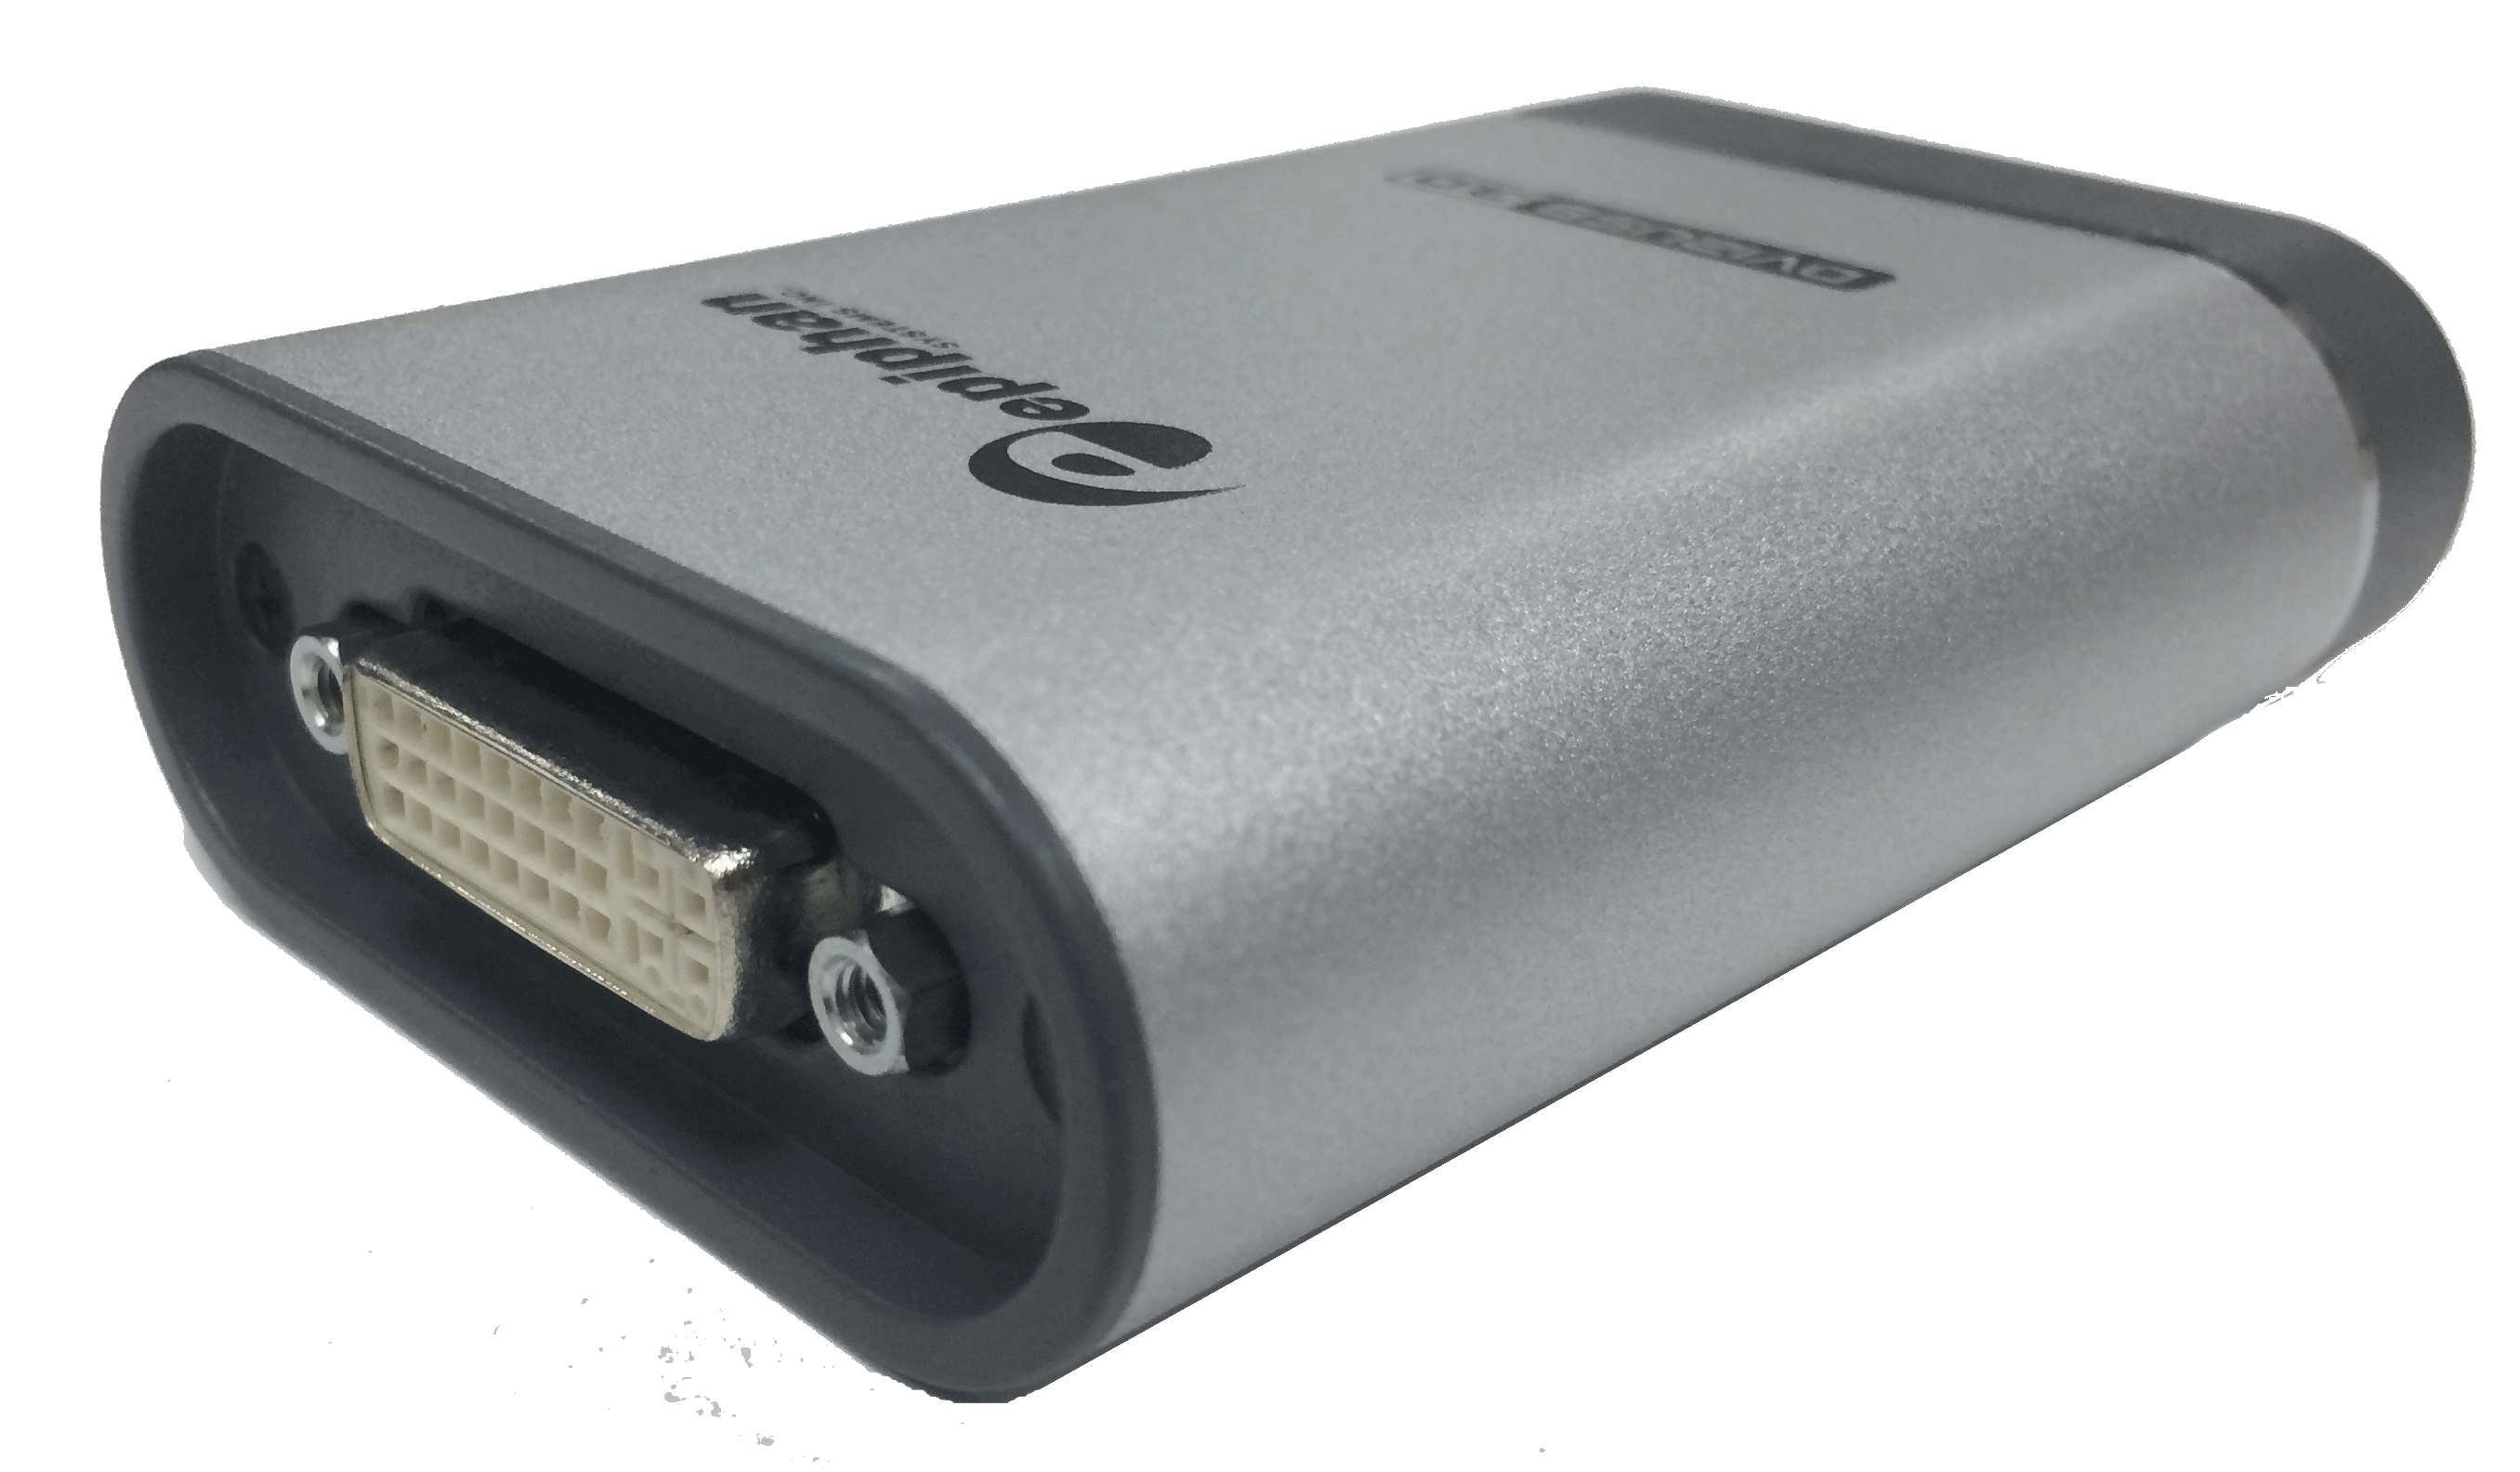 Universal HD 2 USB 3 picture